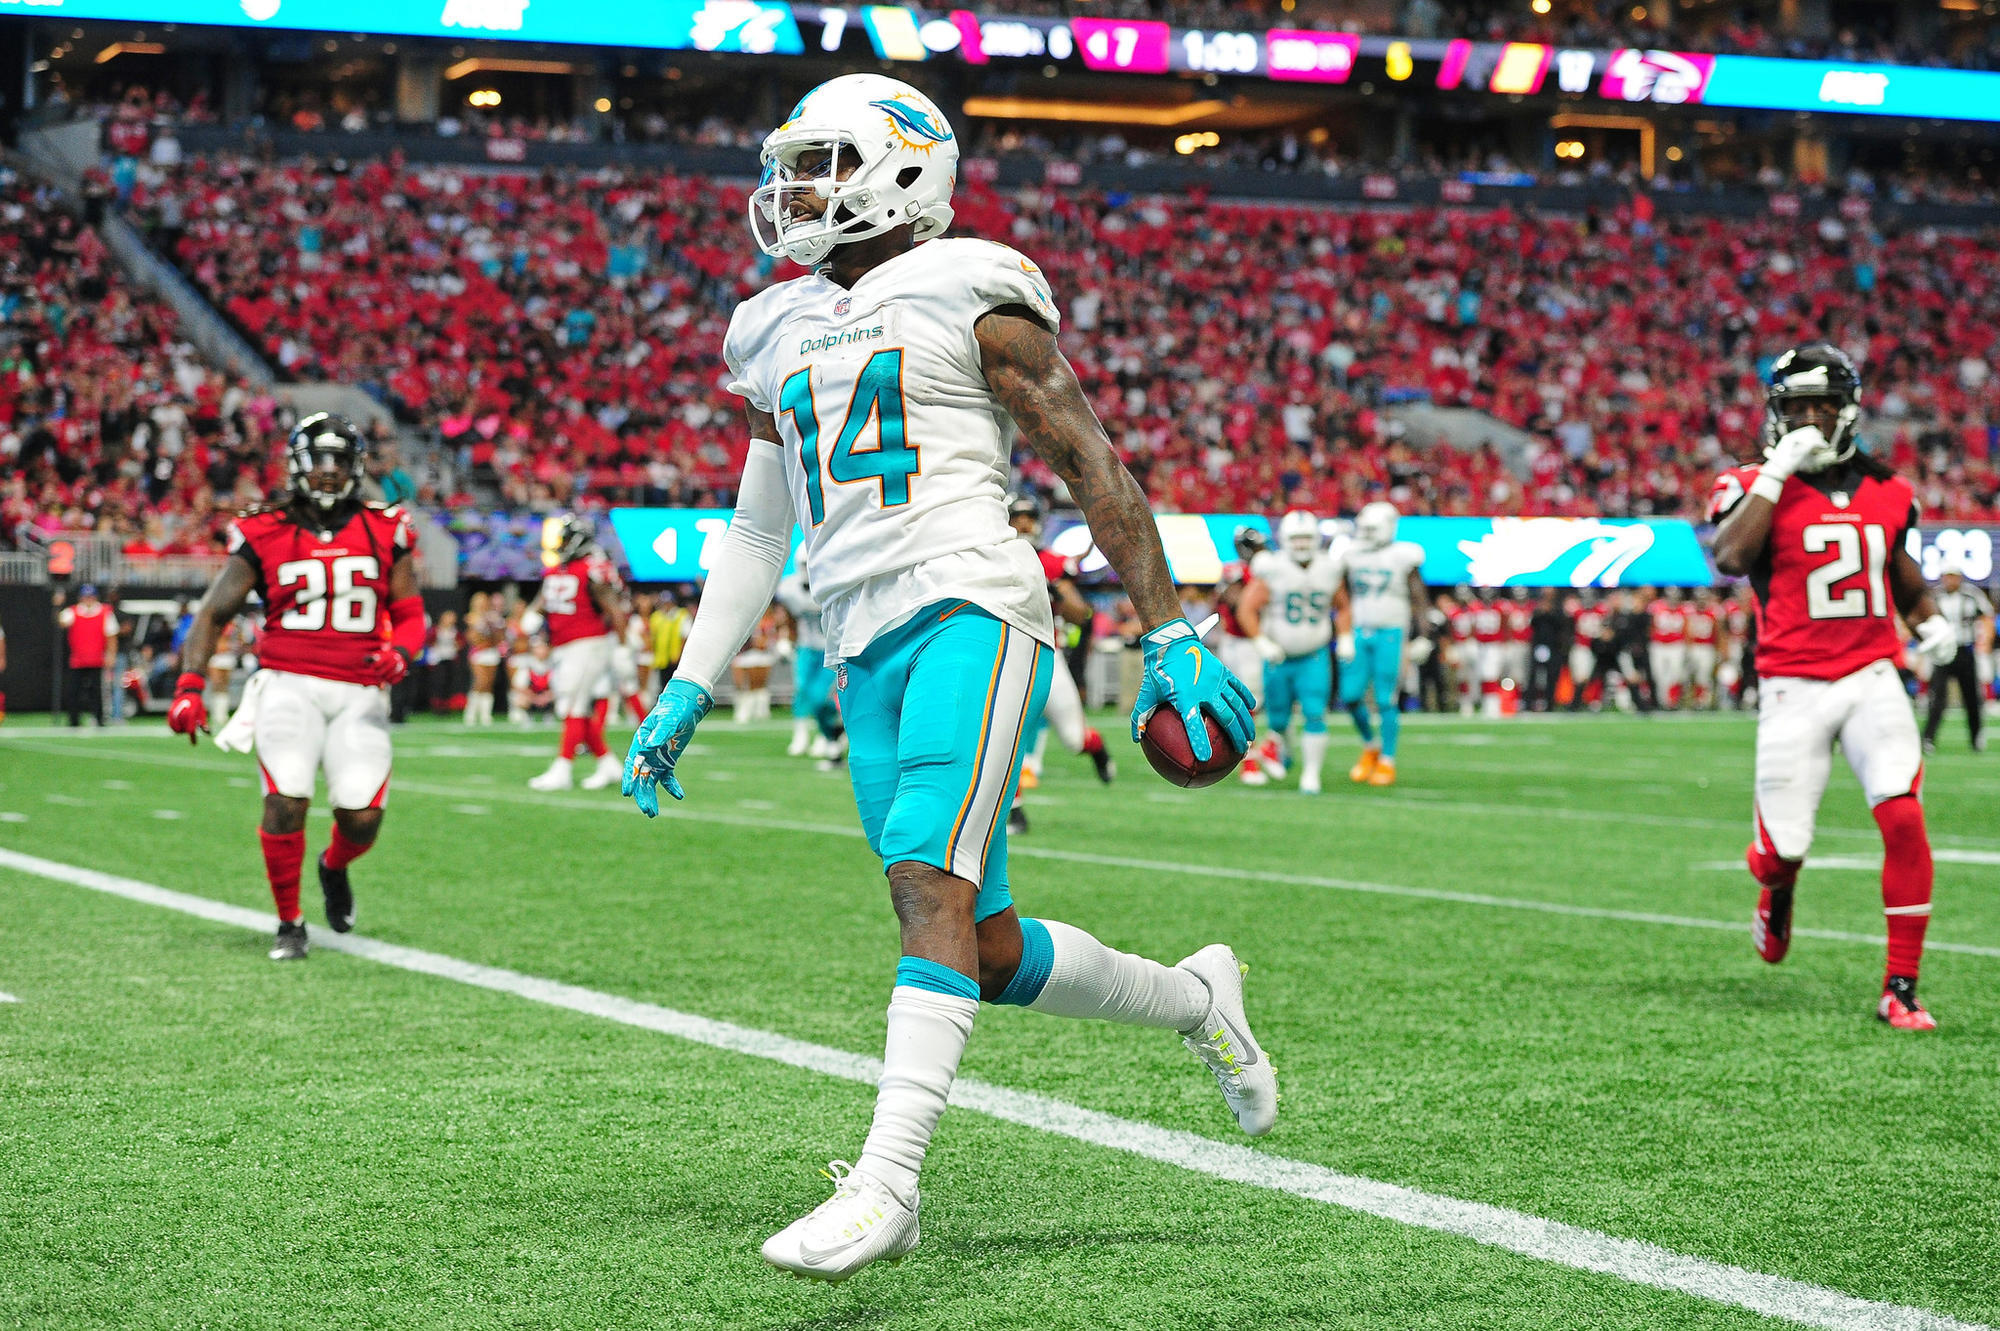 Hyde5: With Ajayi gone, is Jarvis Landry next to be traded? - Sun ...